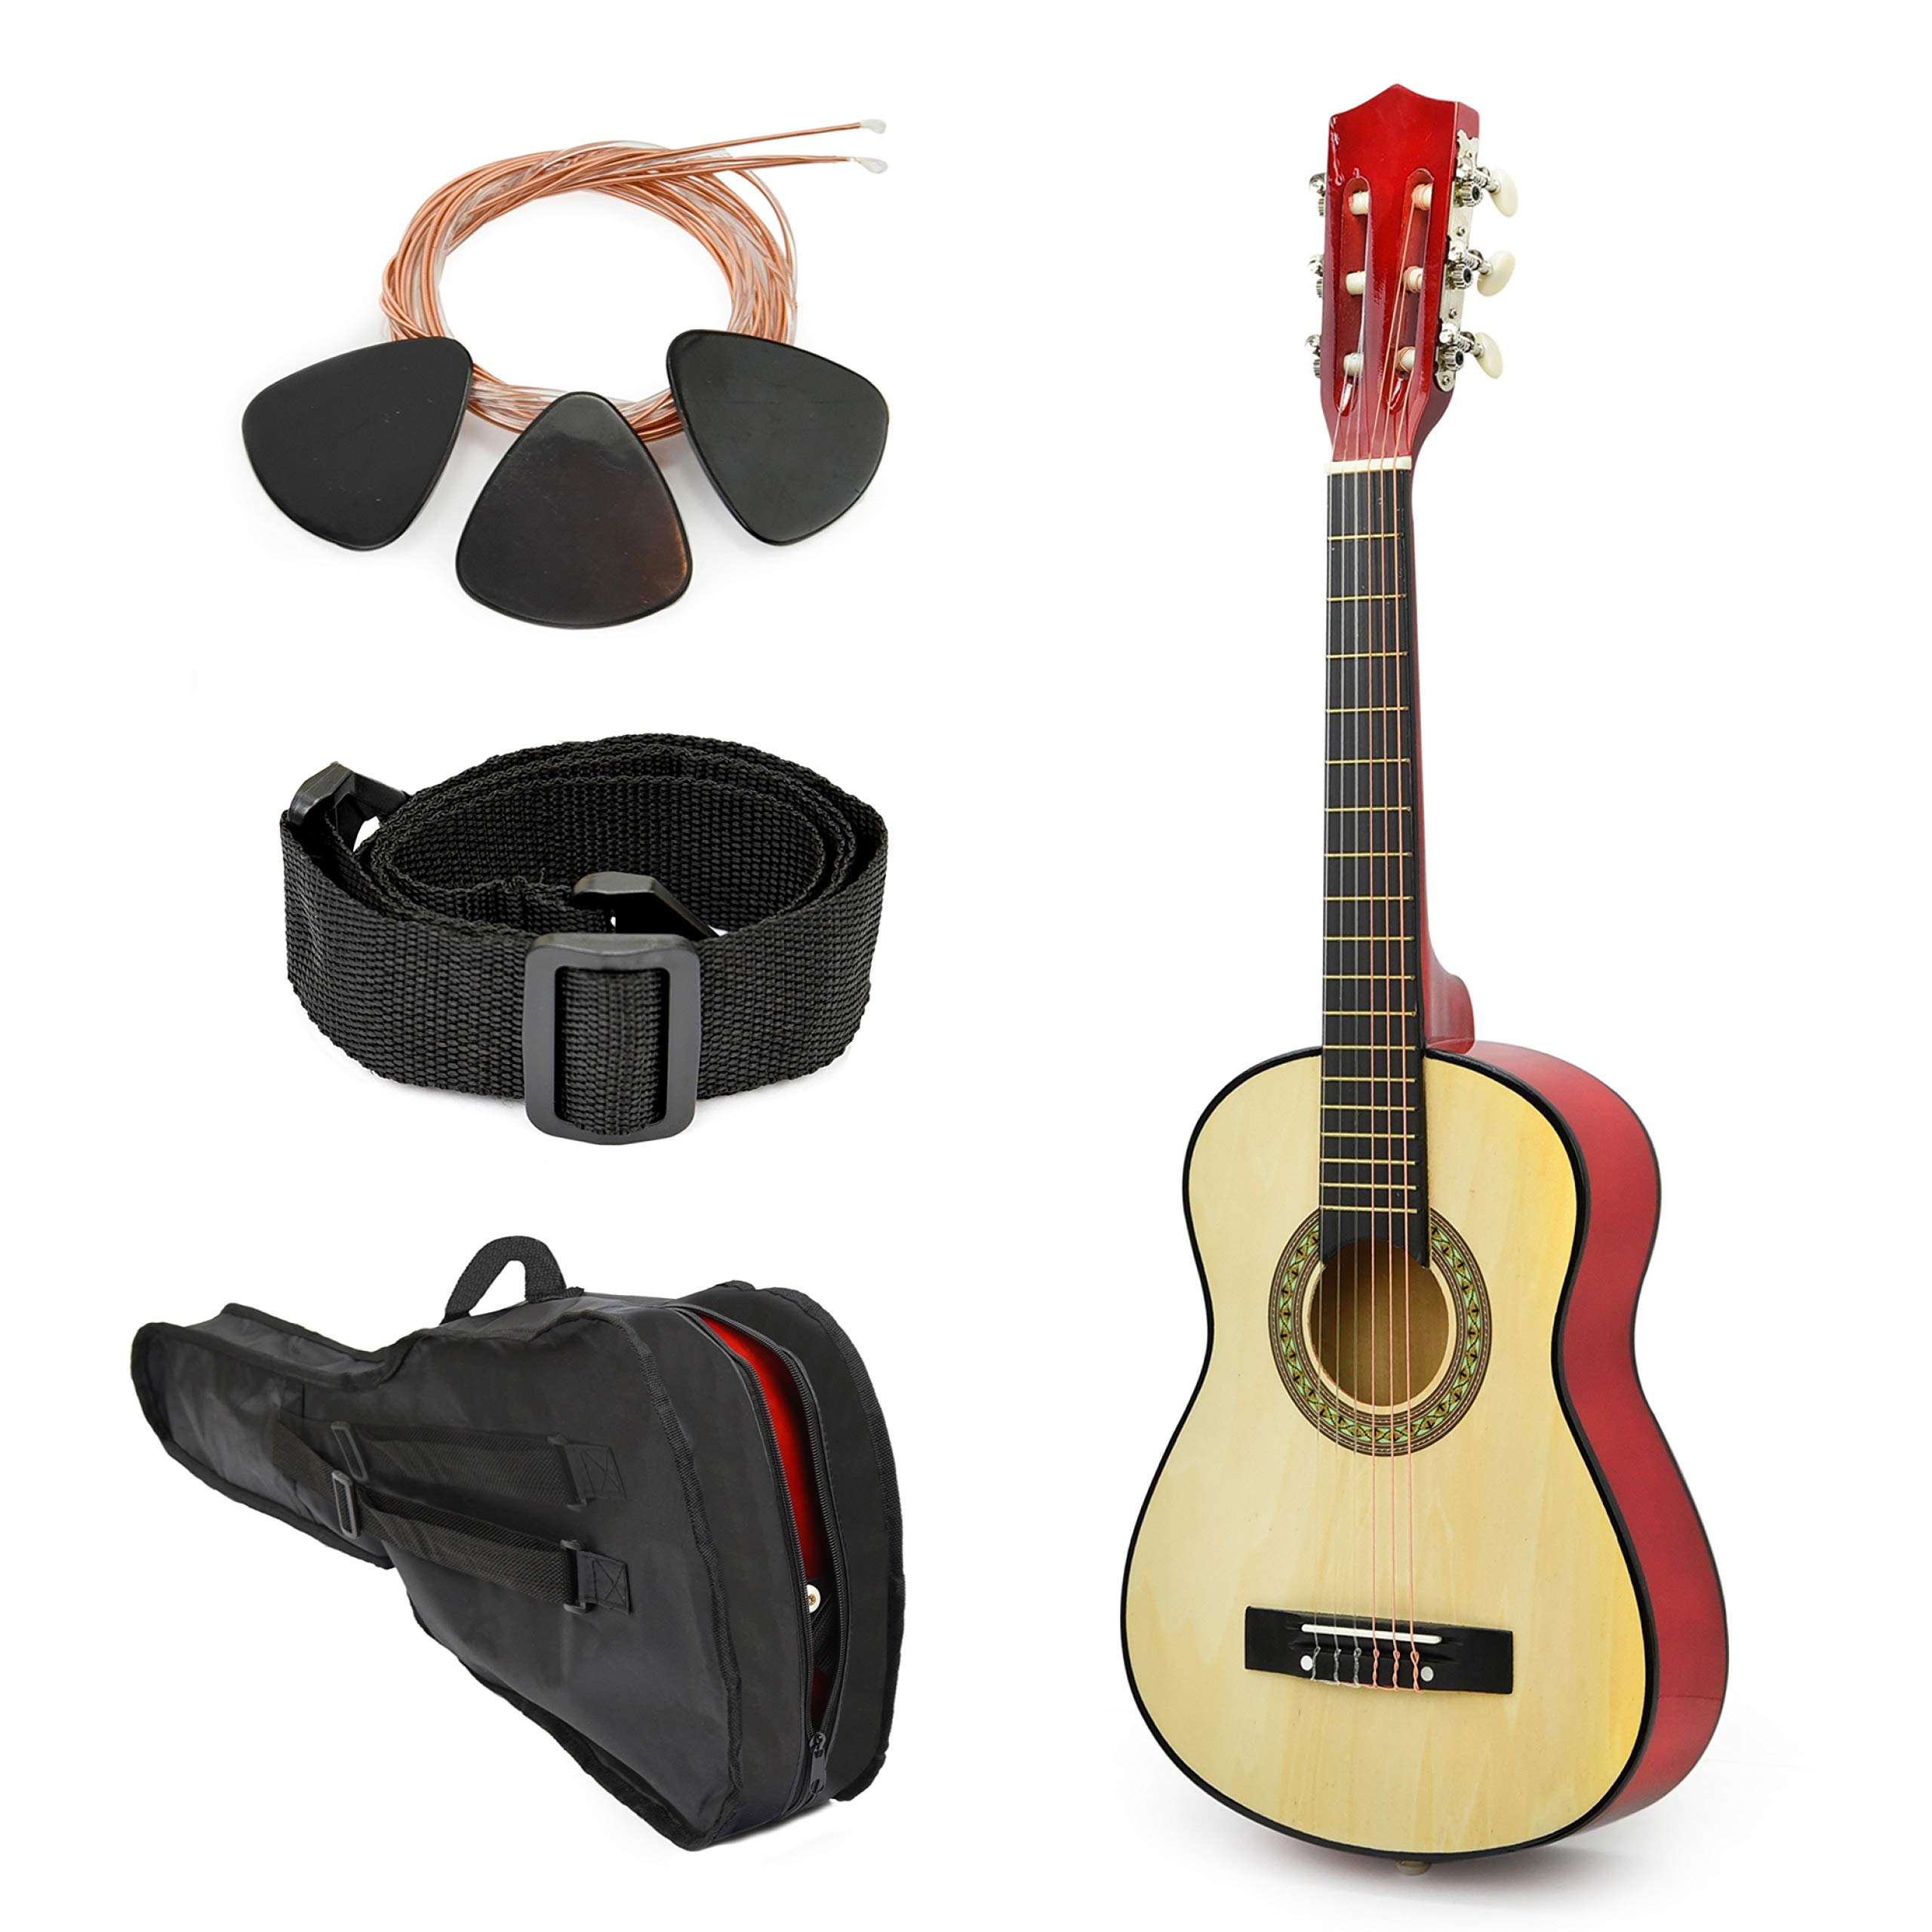 Wood Guitar With Case and Accessories for Kids/Boys/Beginners (38'' NATURAL - Left Handed) by Master Play